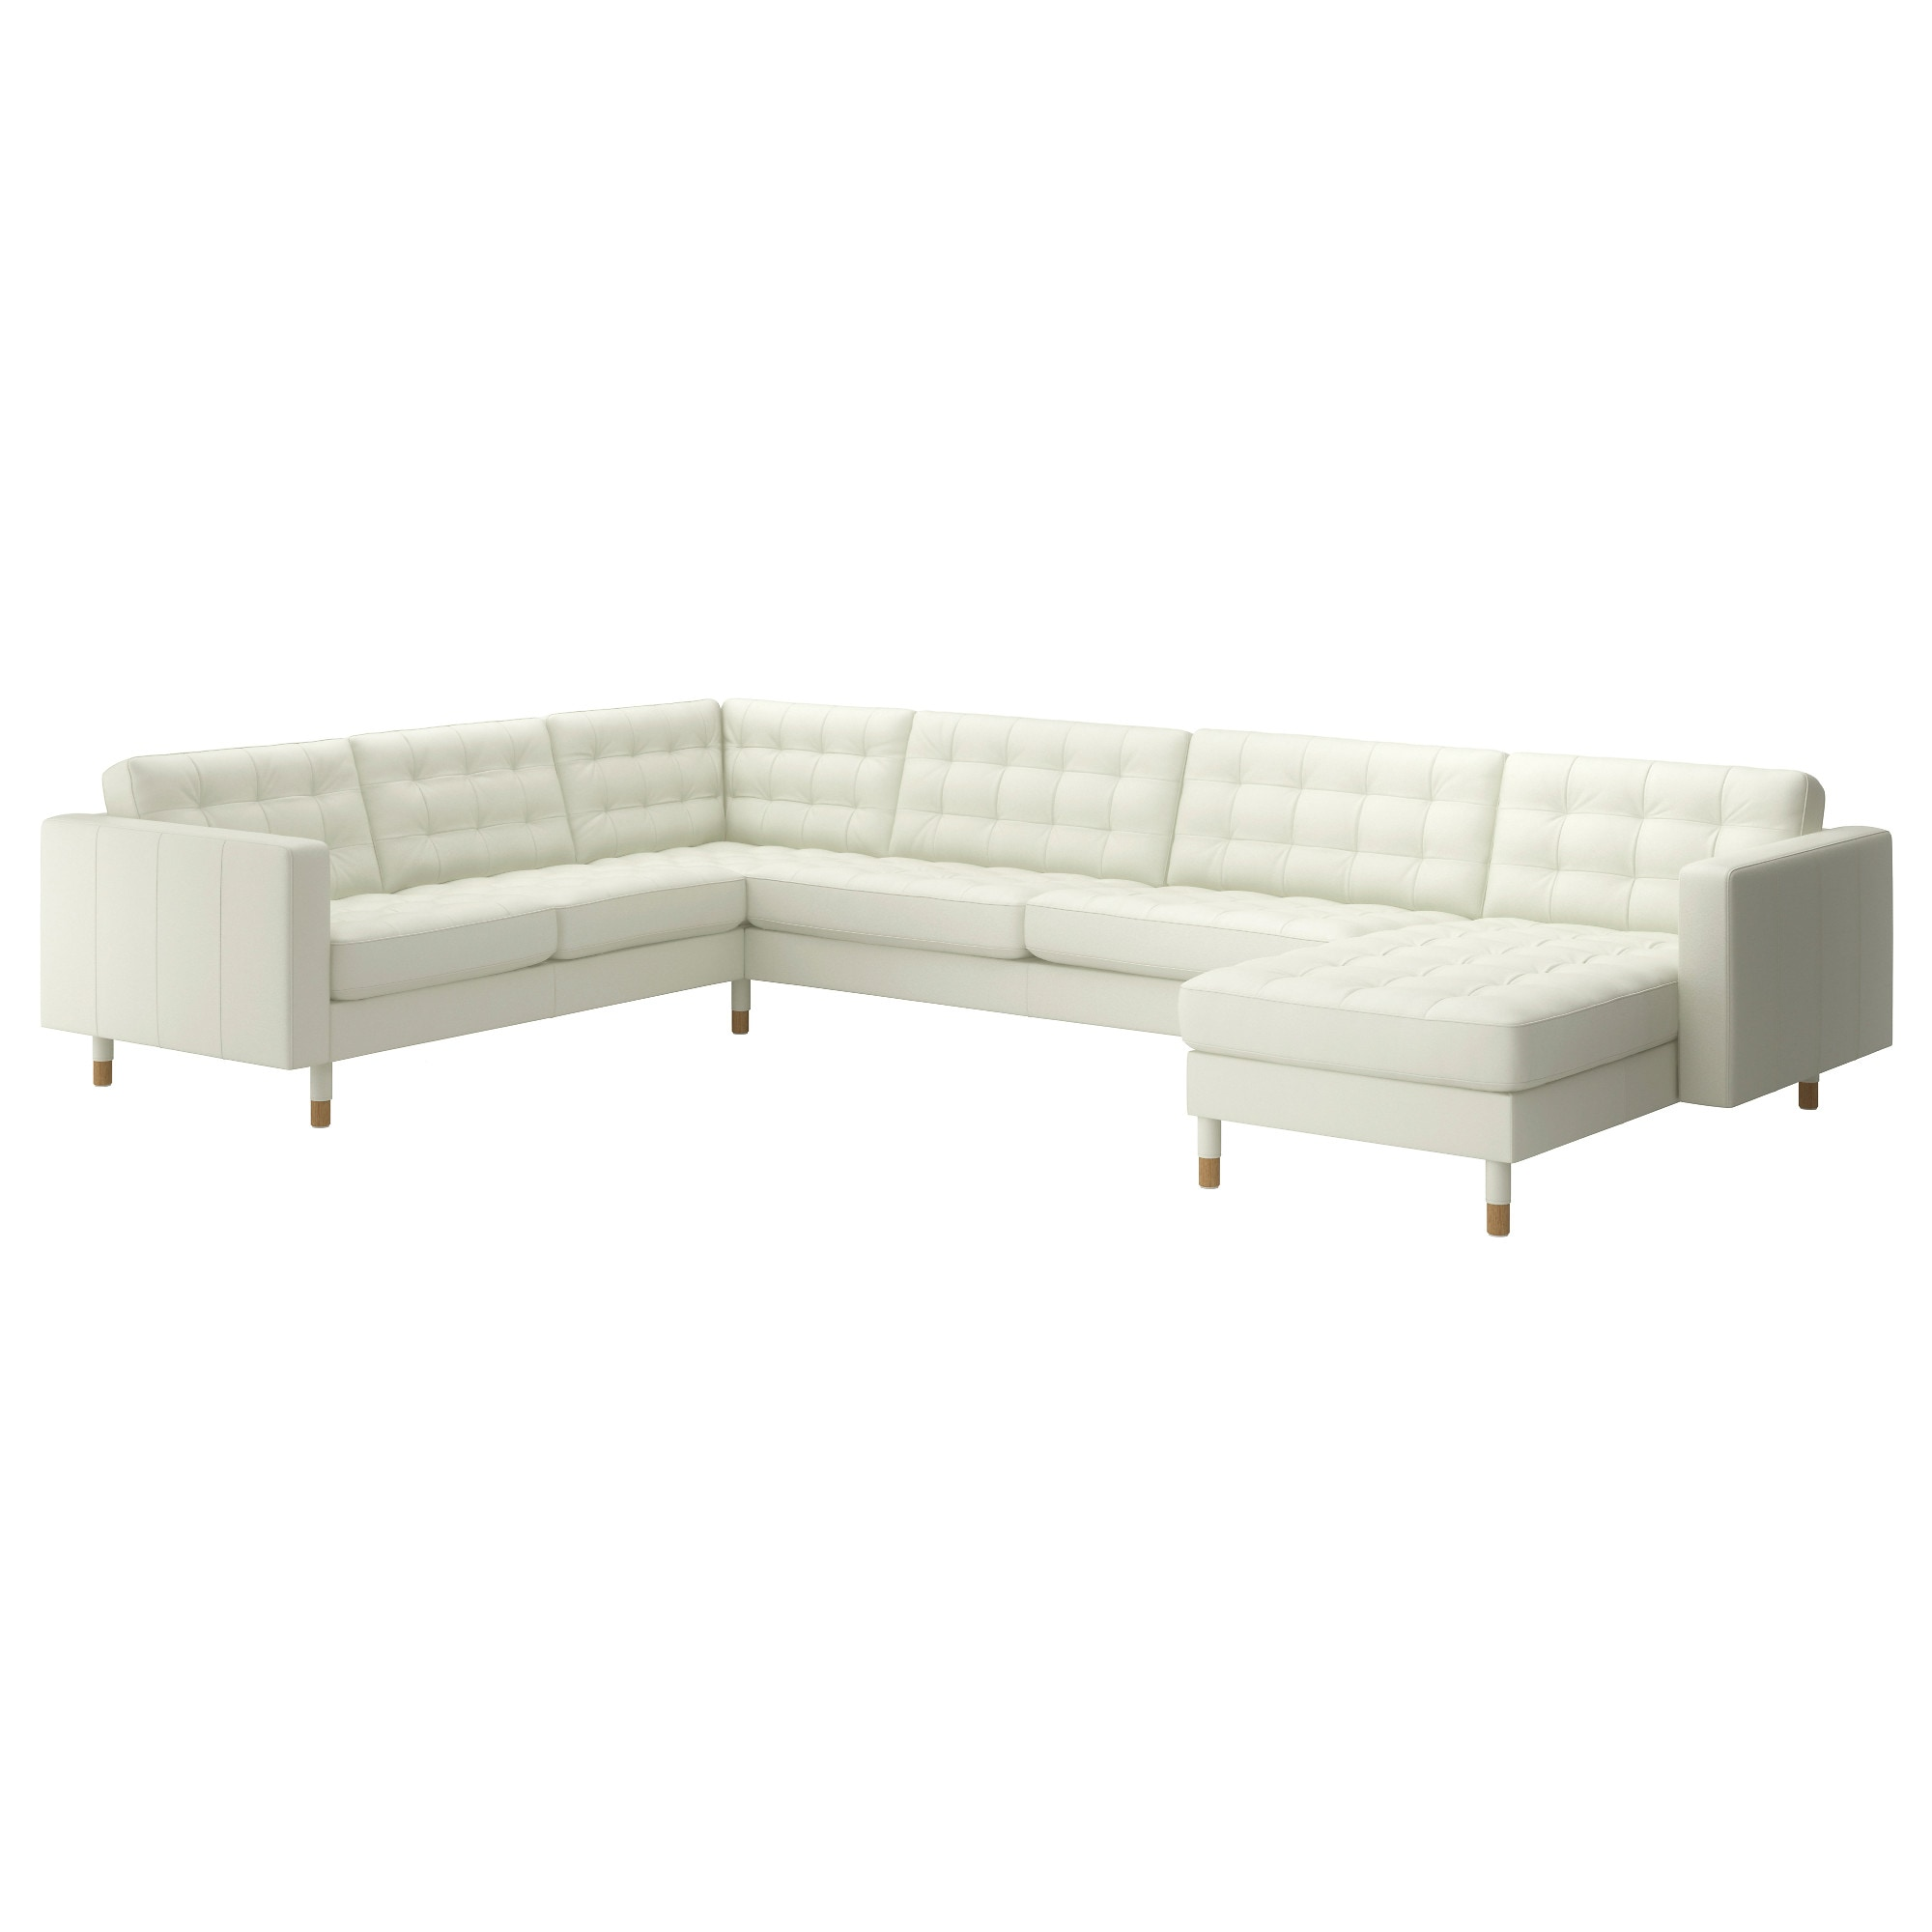 LANDSKRONA sectional 5-seat with chaise Grann Grann/Bomstad Bomstad white  sc 1 st  Ikea : ikea sofa with chaise - Sectionals, Sofas & Couches